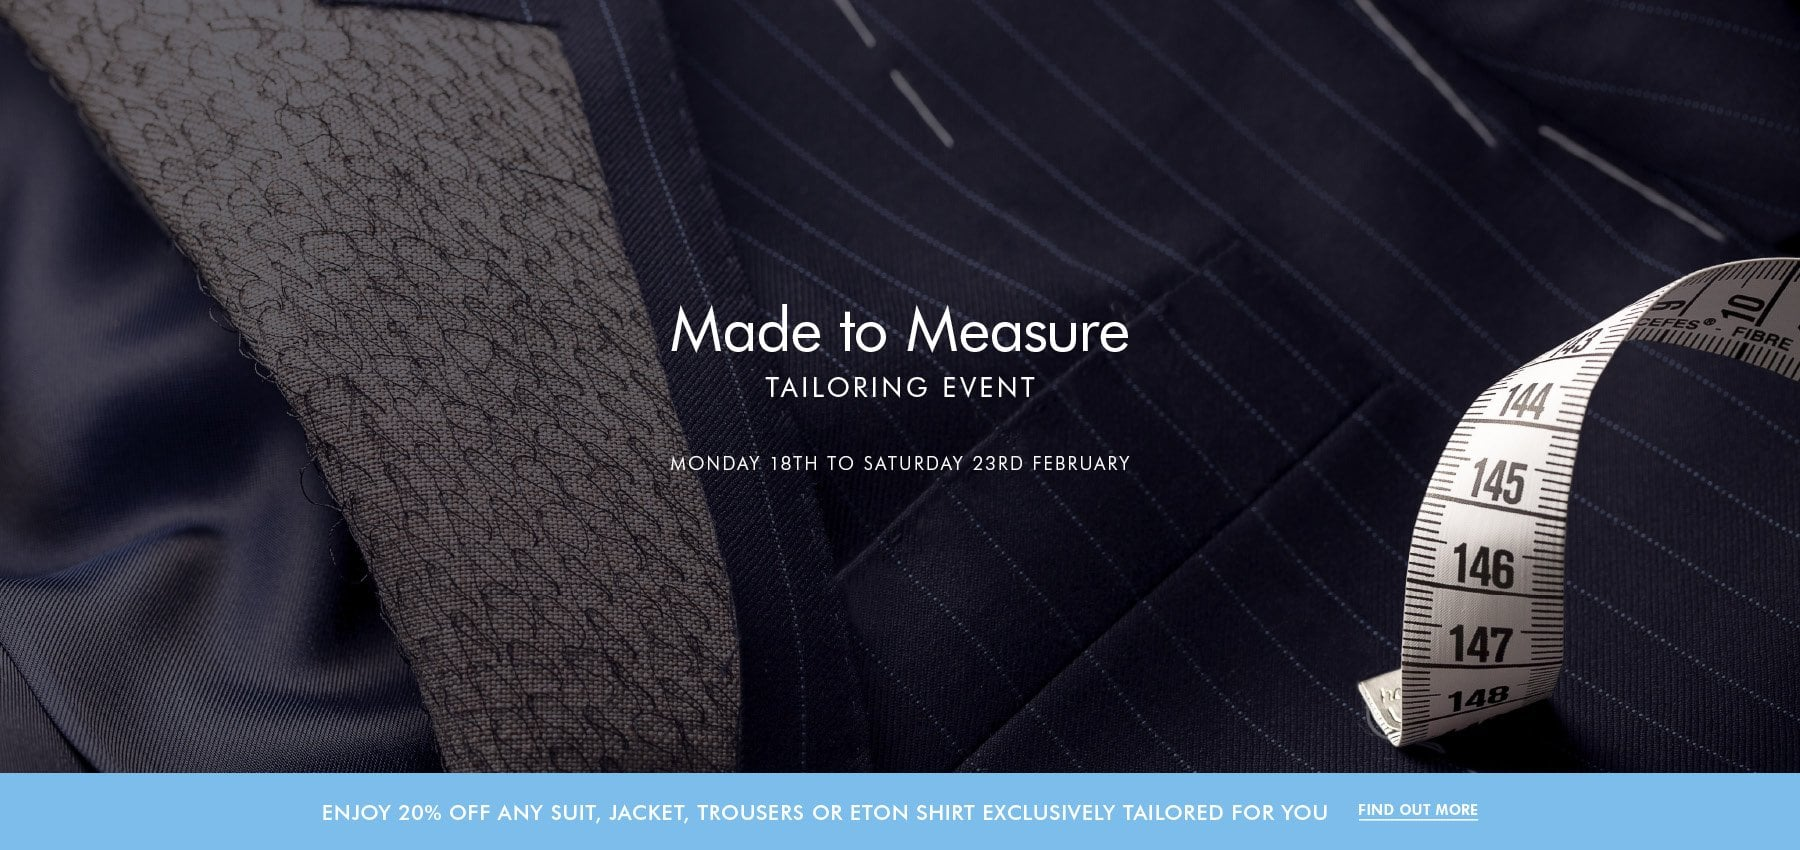 Made to Measure Tailoring Event